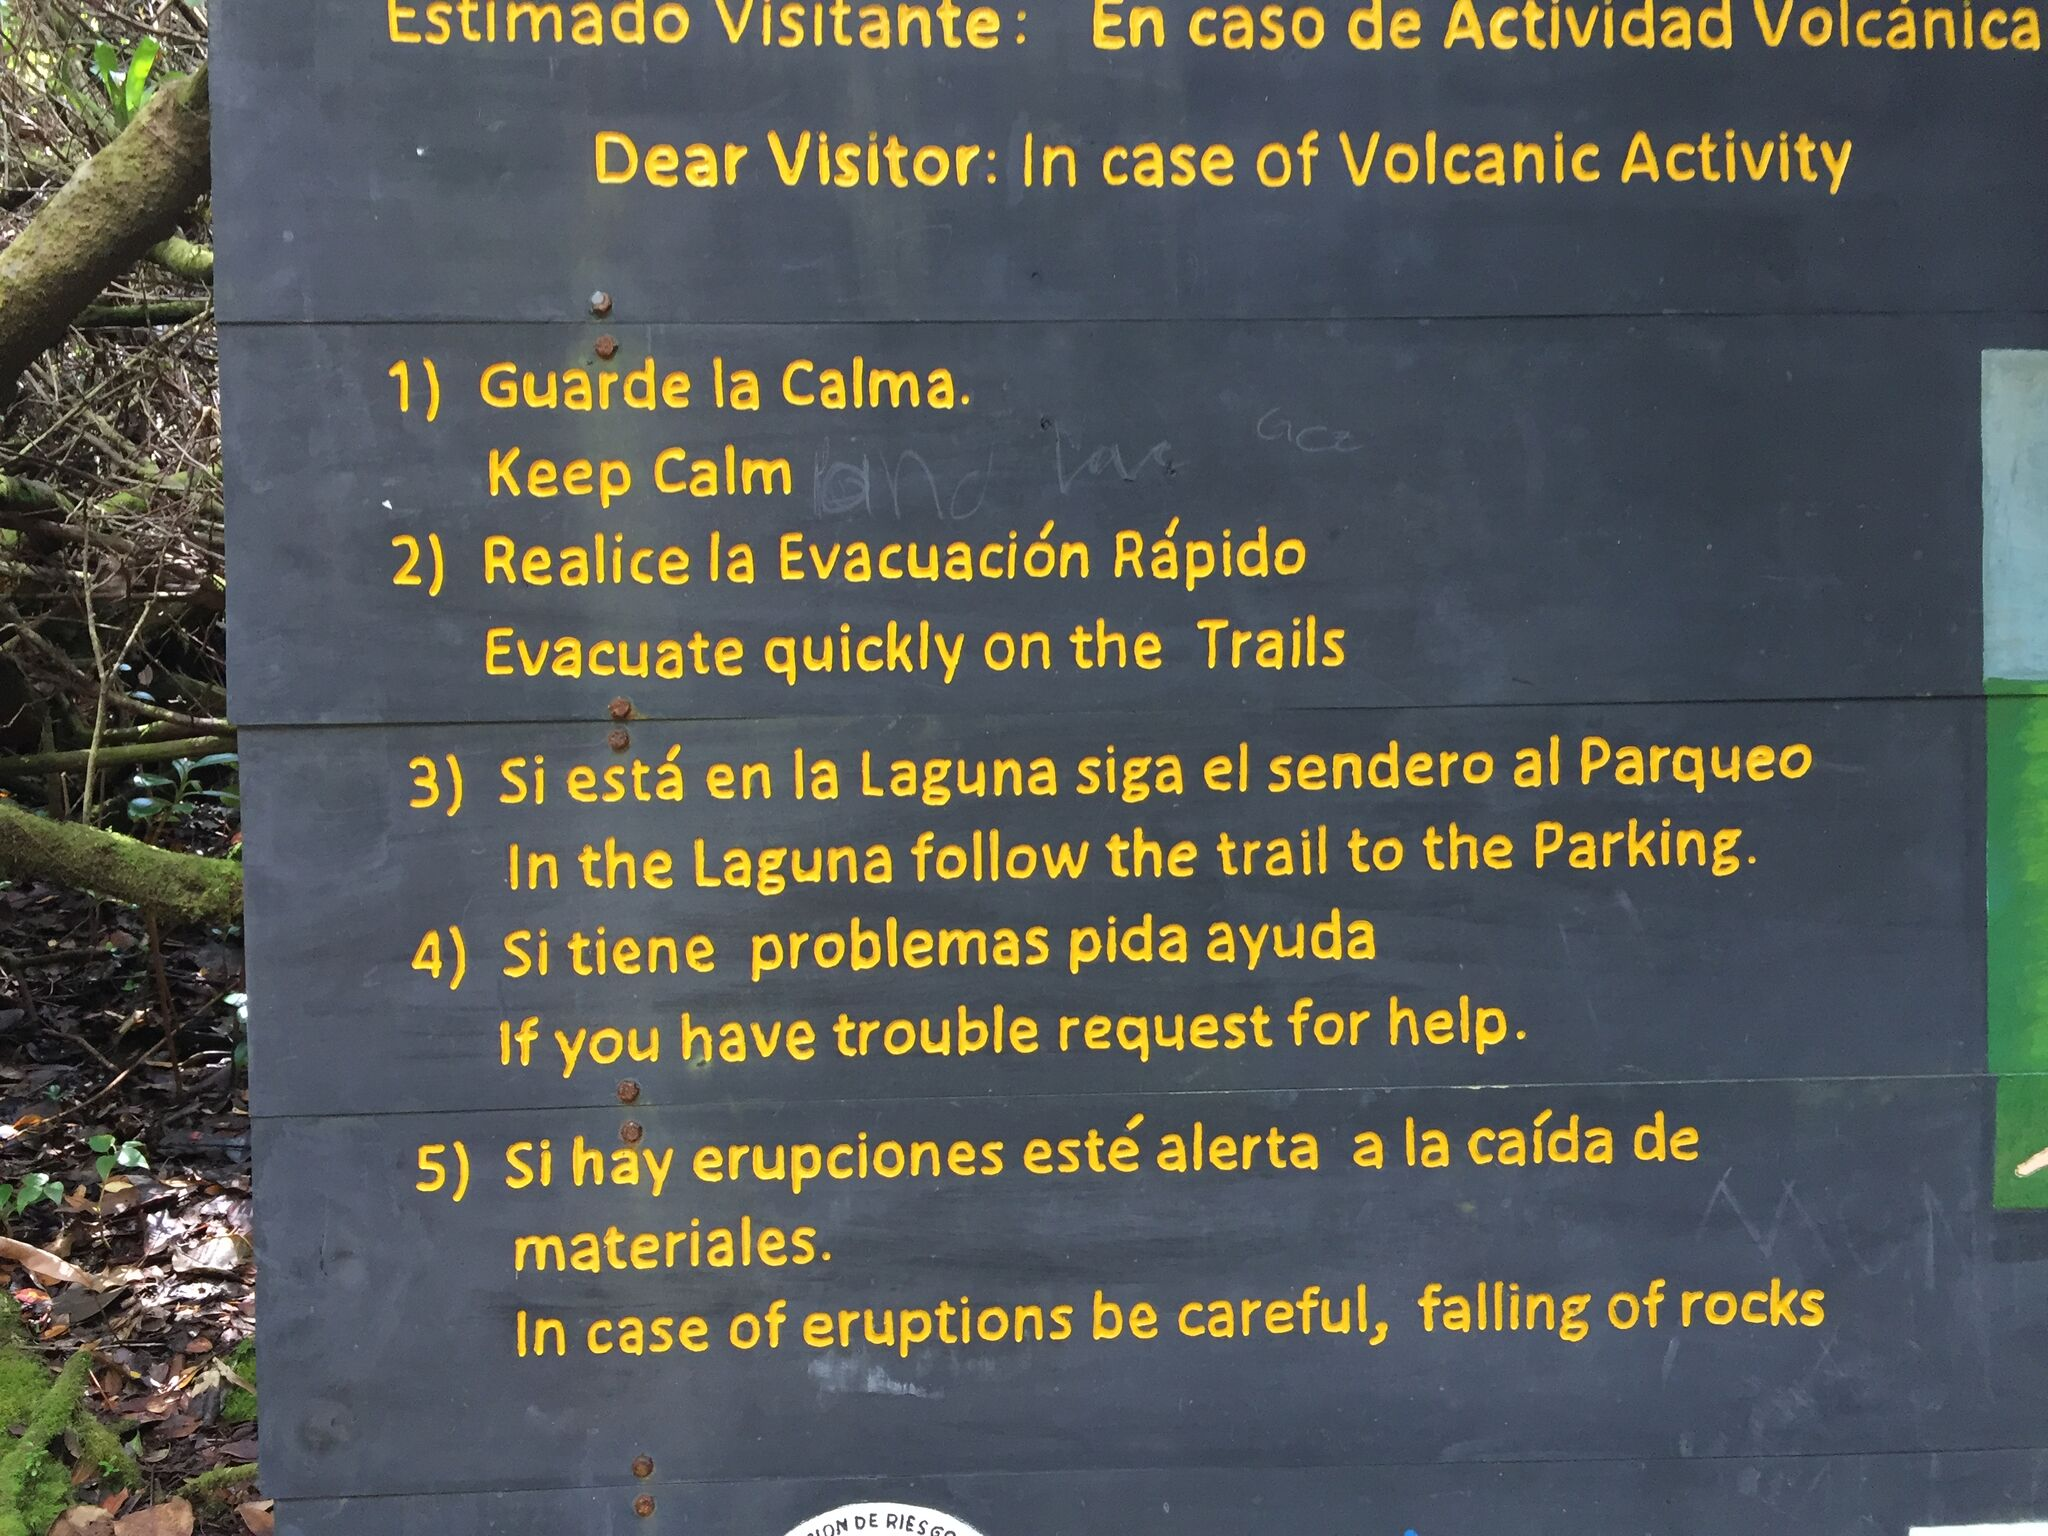 If you can read this message, you are too close? Hints for maintaining one's composure during a volcano eruption, courtesy of Poas Volcano National Park in Costa Rica. Photo credit: M. Ciavardini